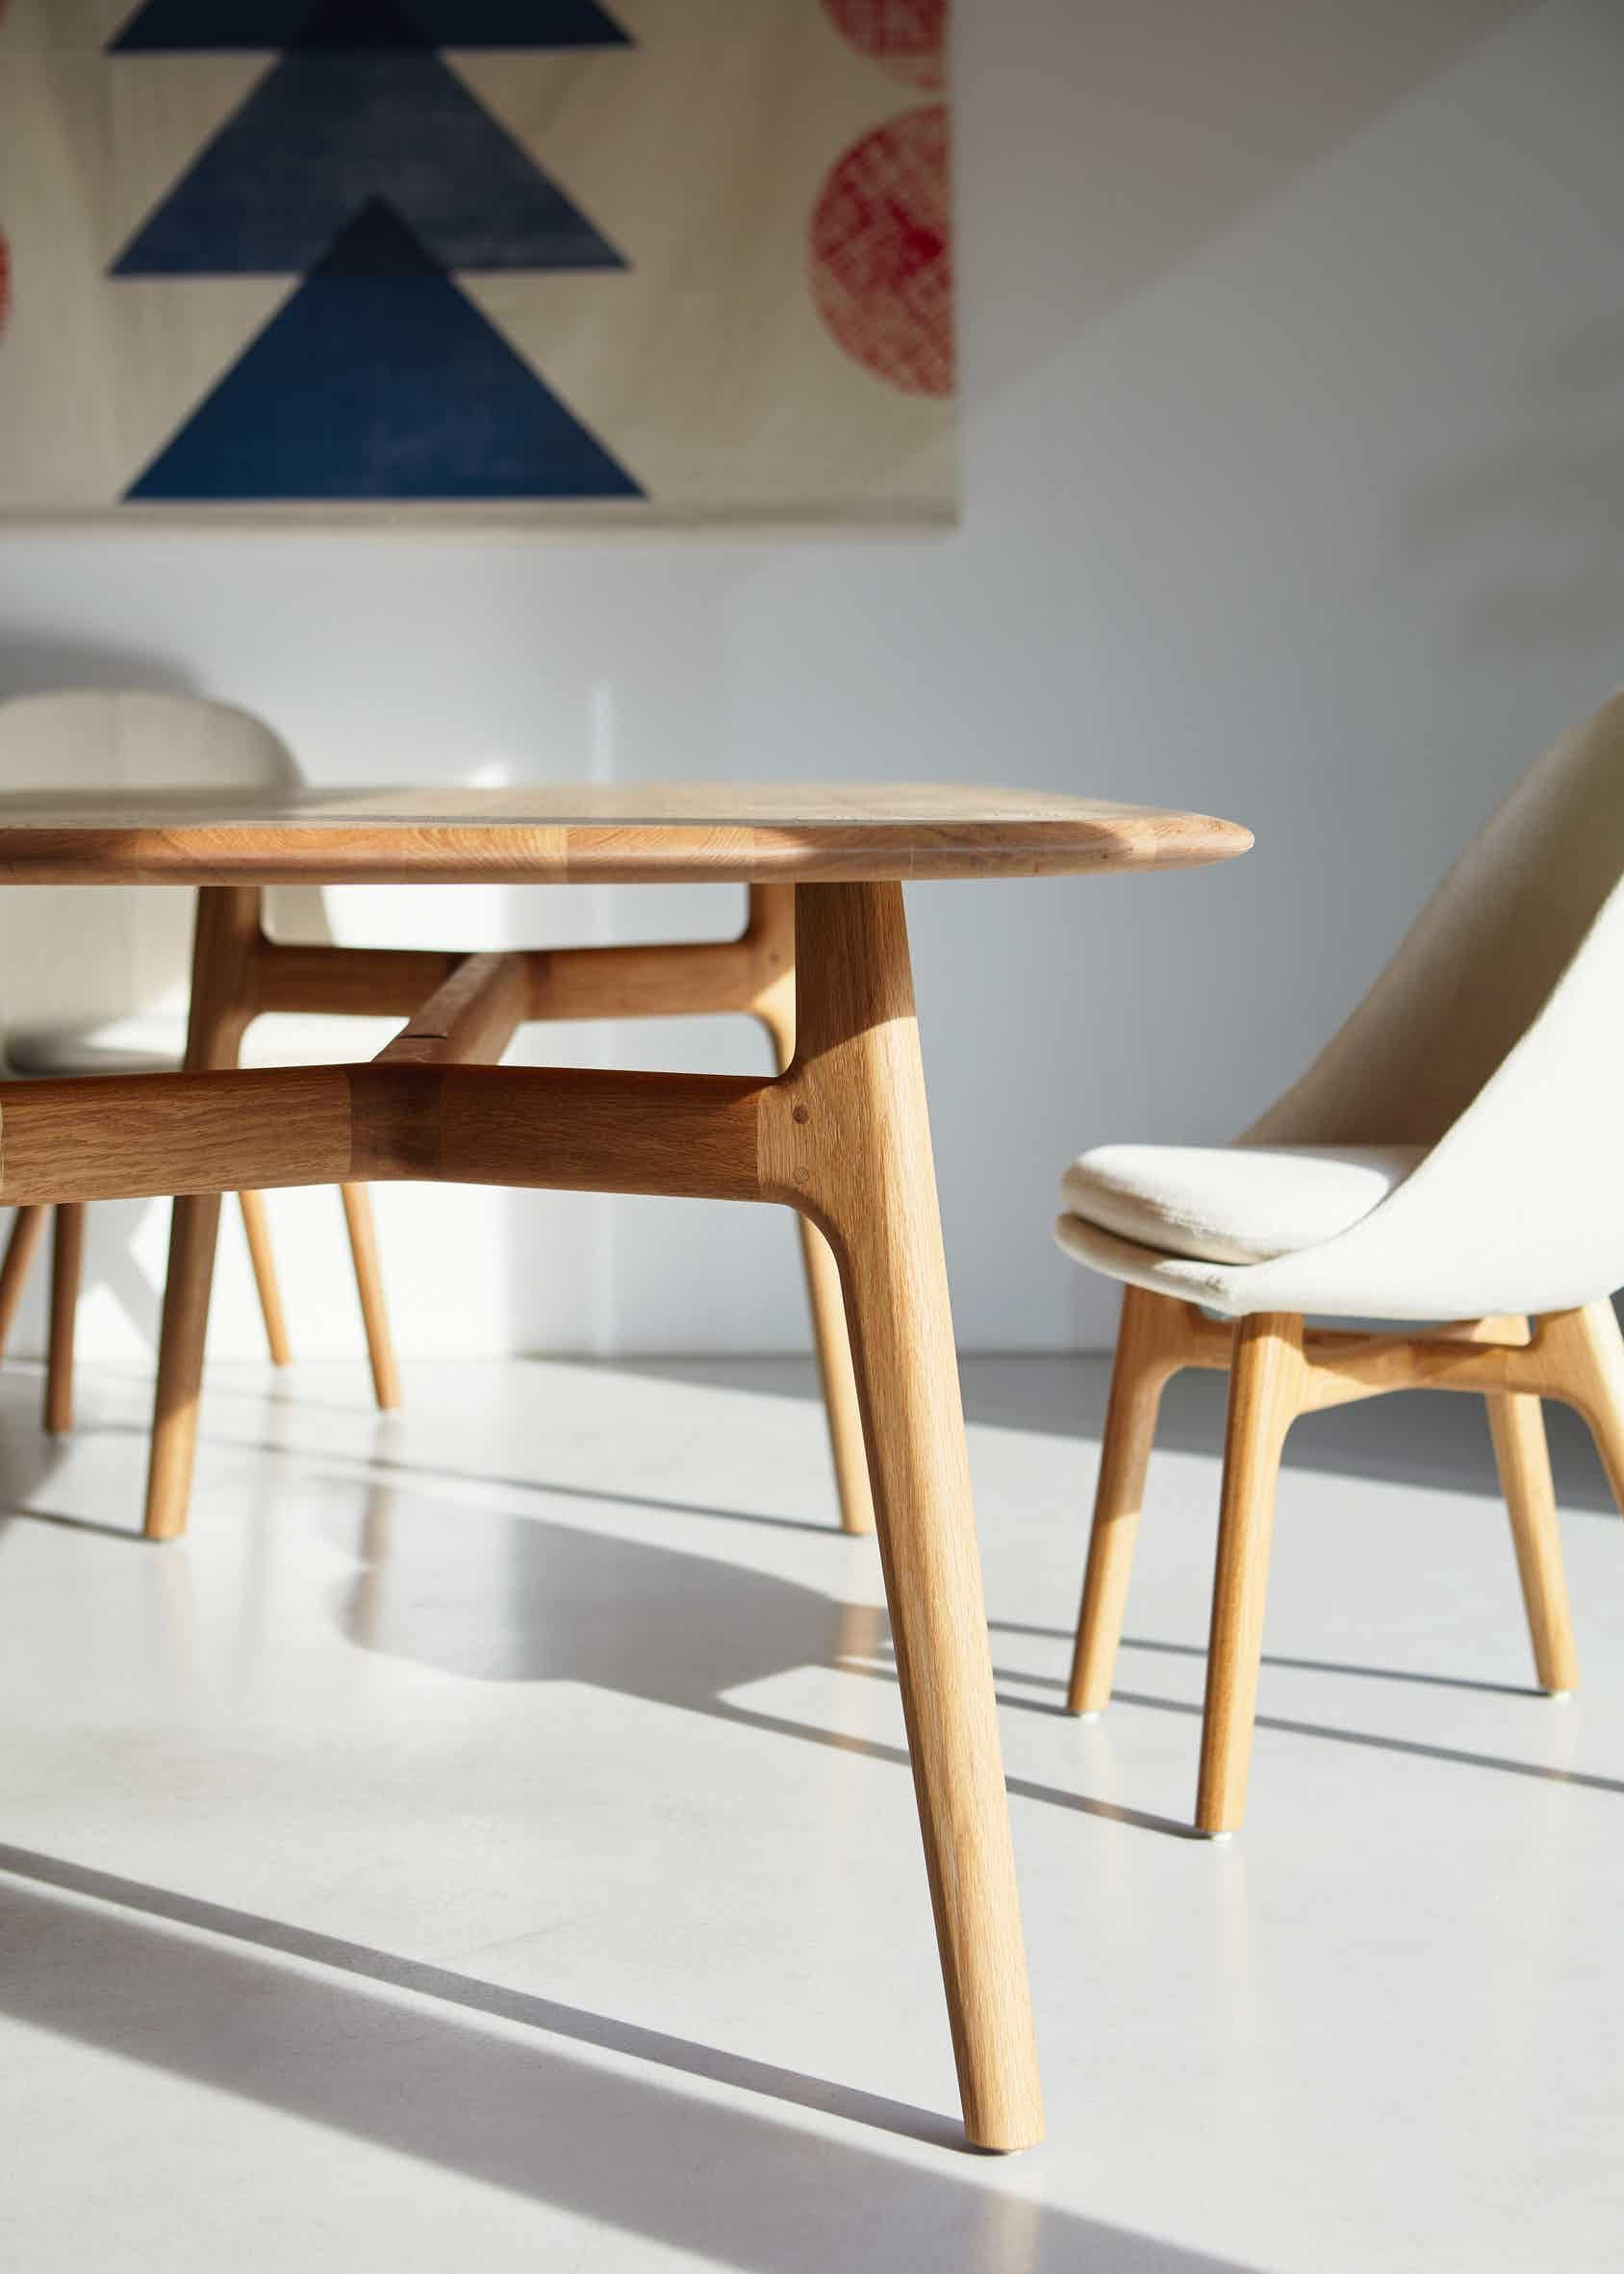 Solo Dining Chair By De La Espada Now Available At Haute Living Dining Chairs Contemporary Furniture Design Chair